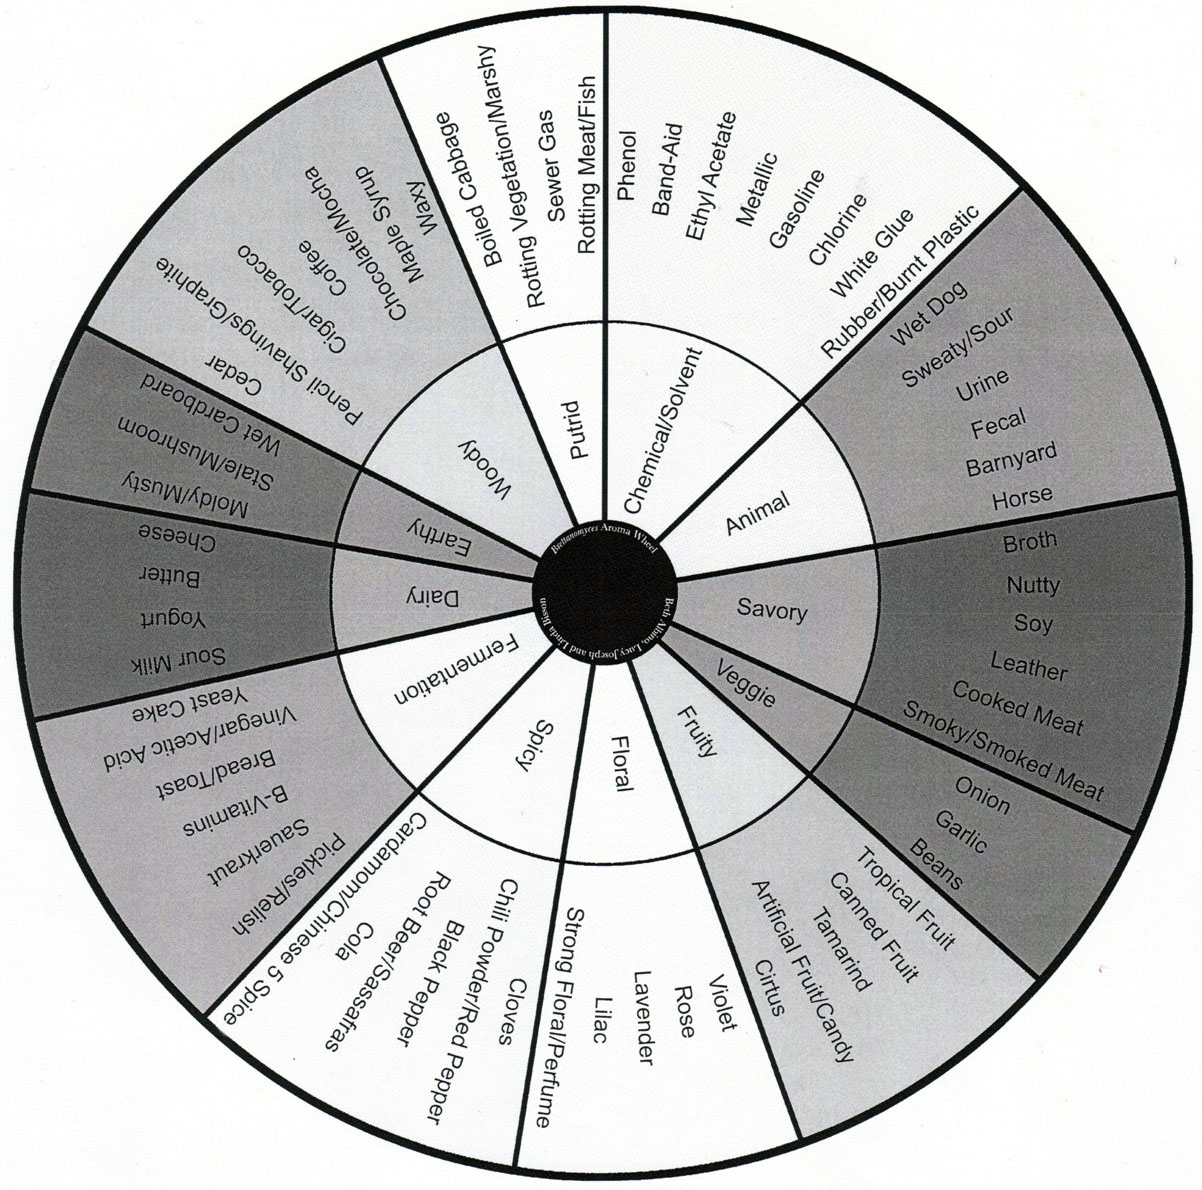 The Brettanomyces Flavor Wheel is a great reference to have available when tasting sour beers for the purpose of palate training.